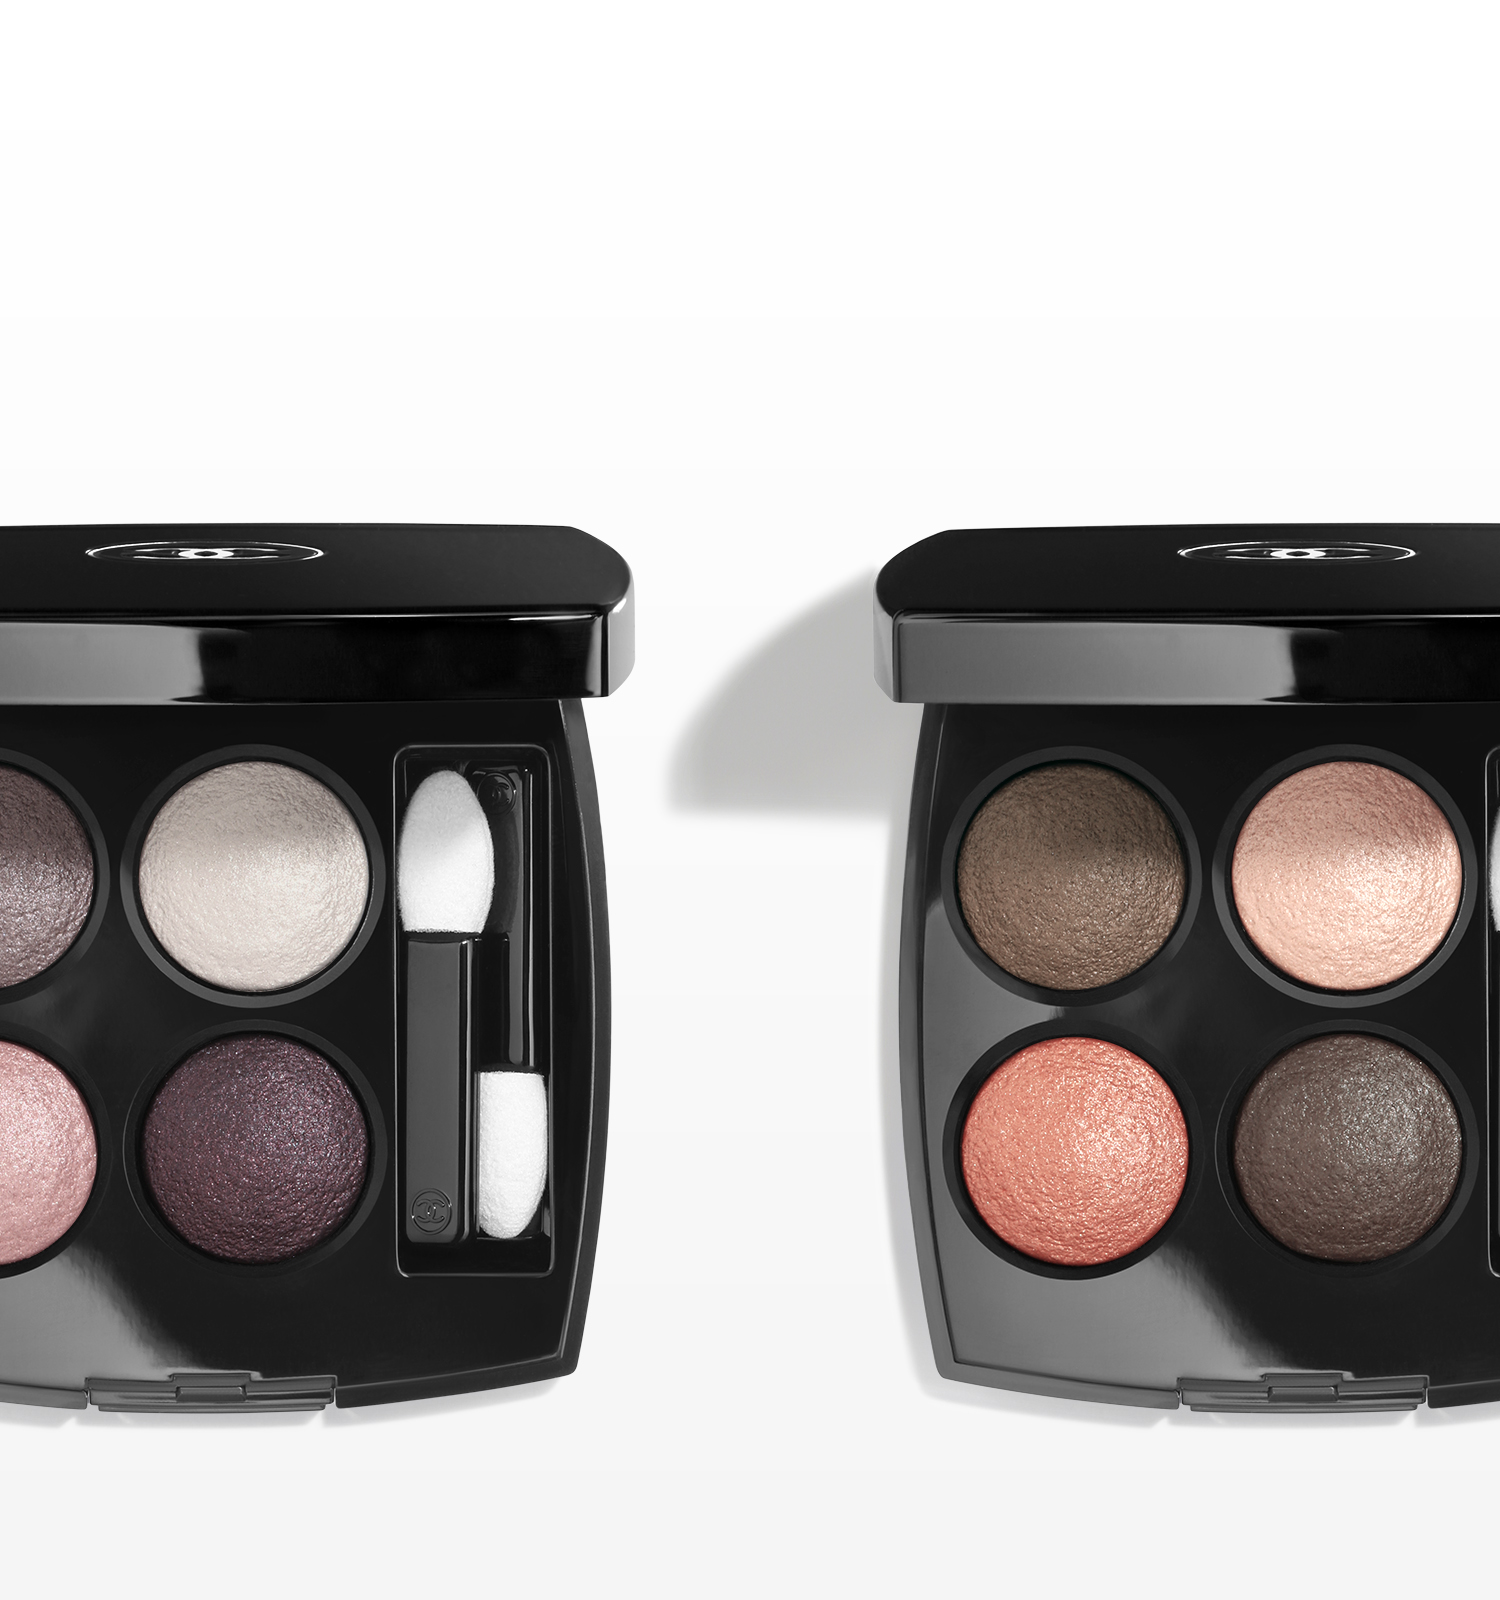 Eyeshadows - Eyeshadow Palettes & Primers | CHANEL